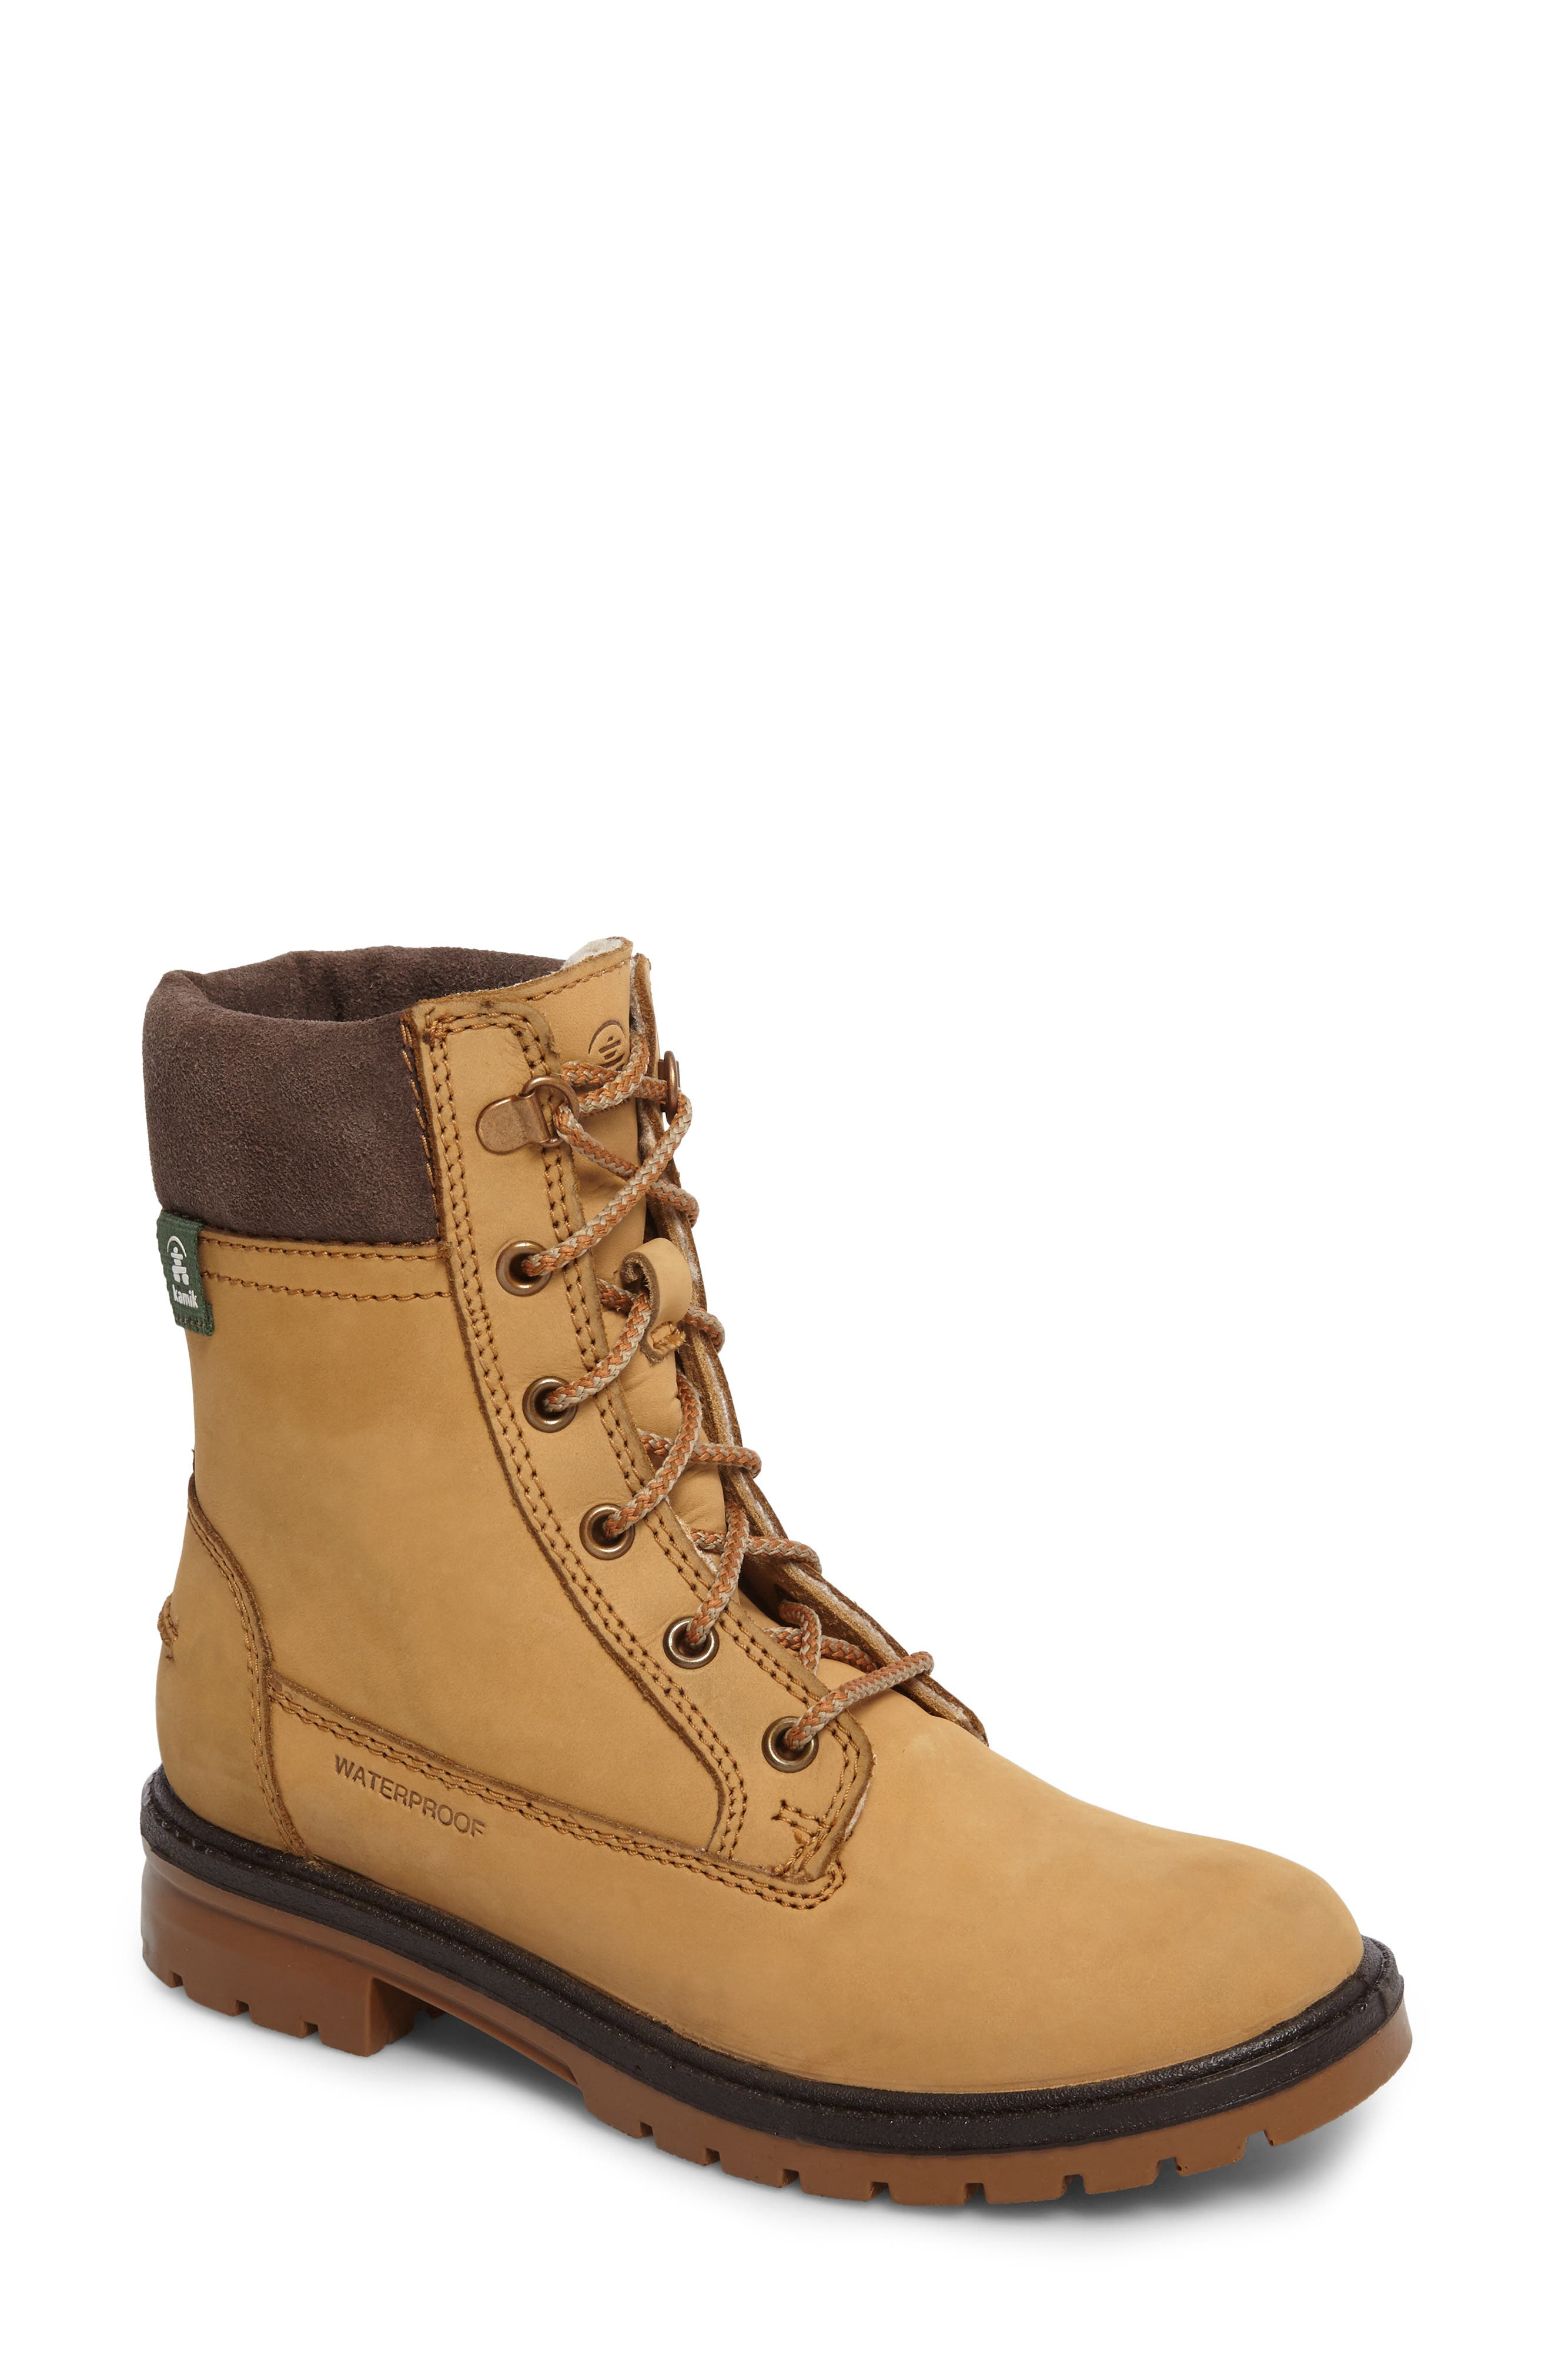 Rogue 5 Waterproof Boot,                         Main,                         color, Honey Leather